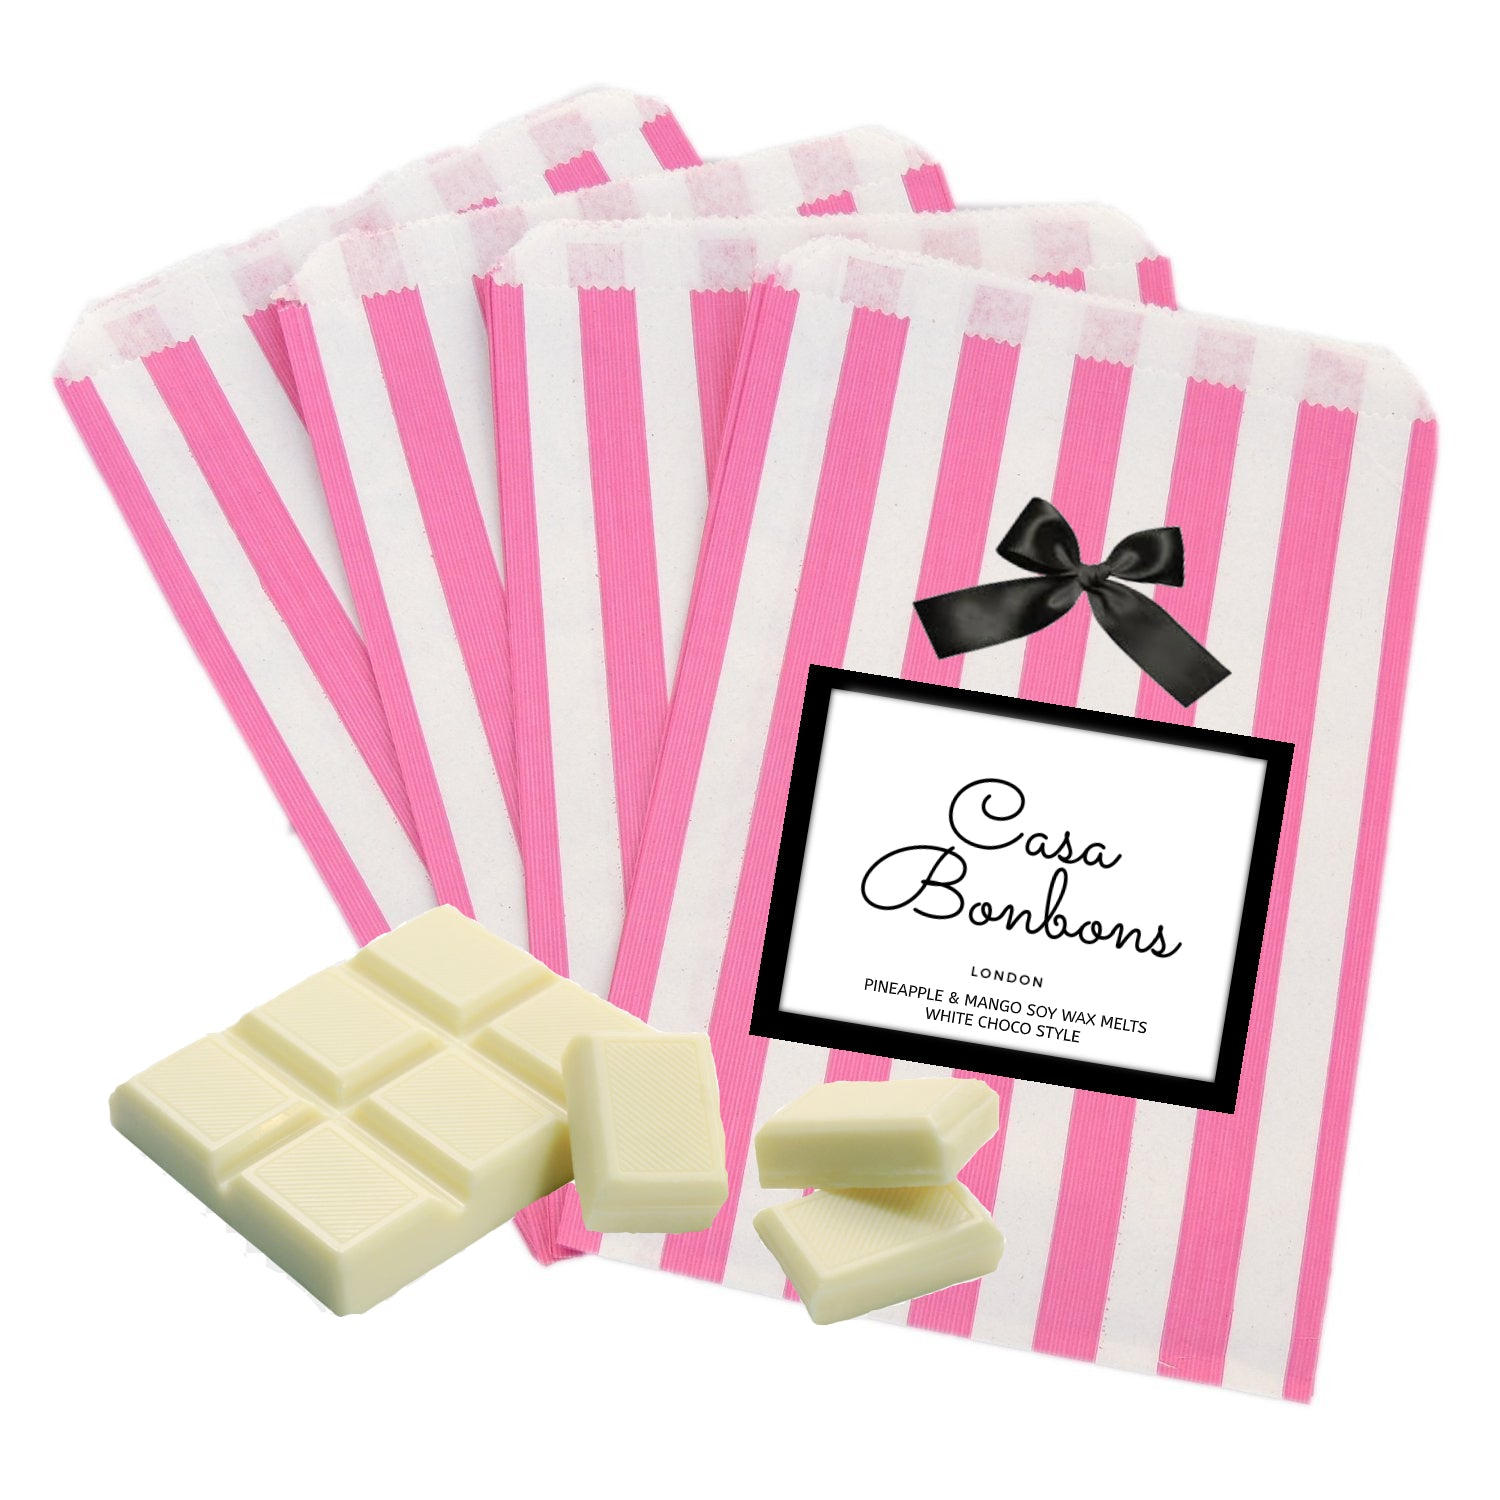 Pineapple & Mango gentle scented white chocolate style Soy Wax Melts,  PRE ORDER delivery end of February - natoorio